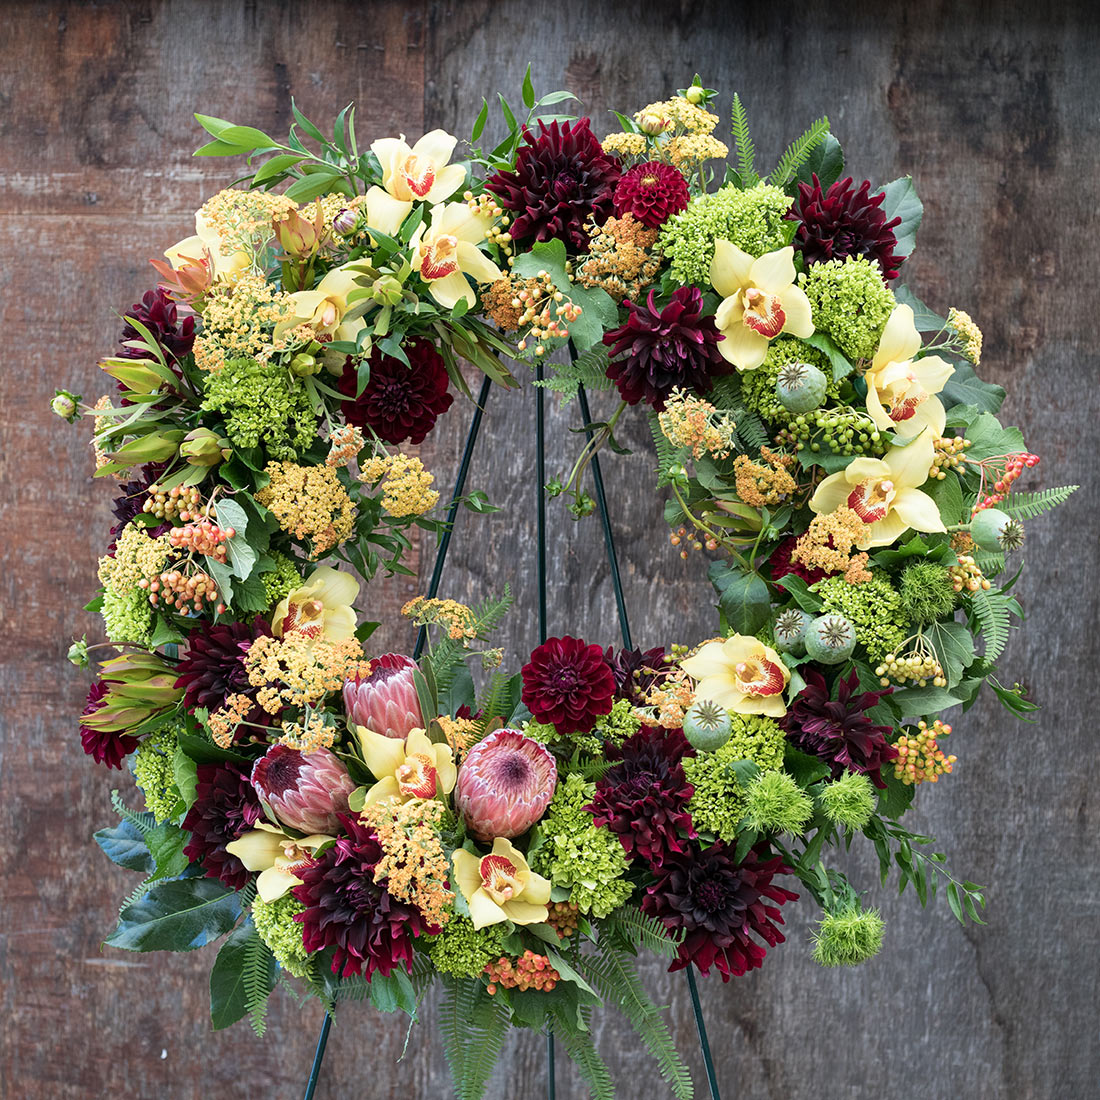 An image of a bright various flowered funeral wreath